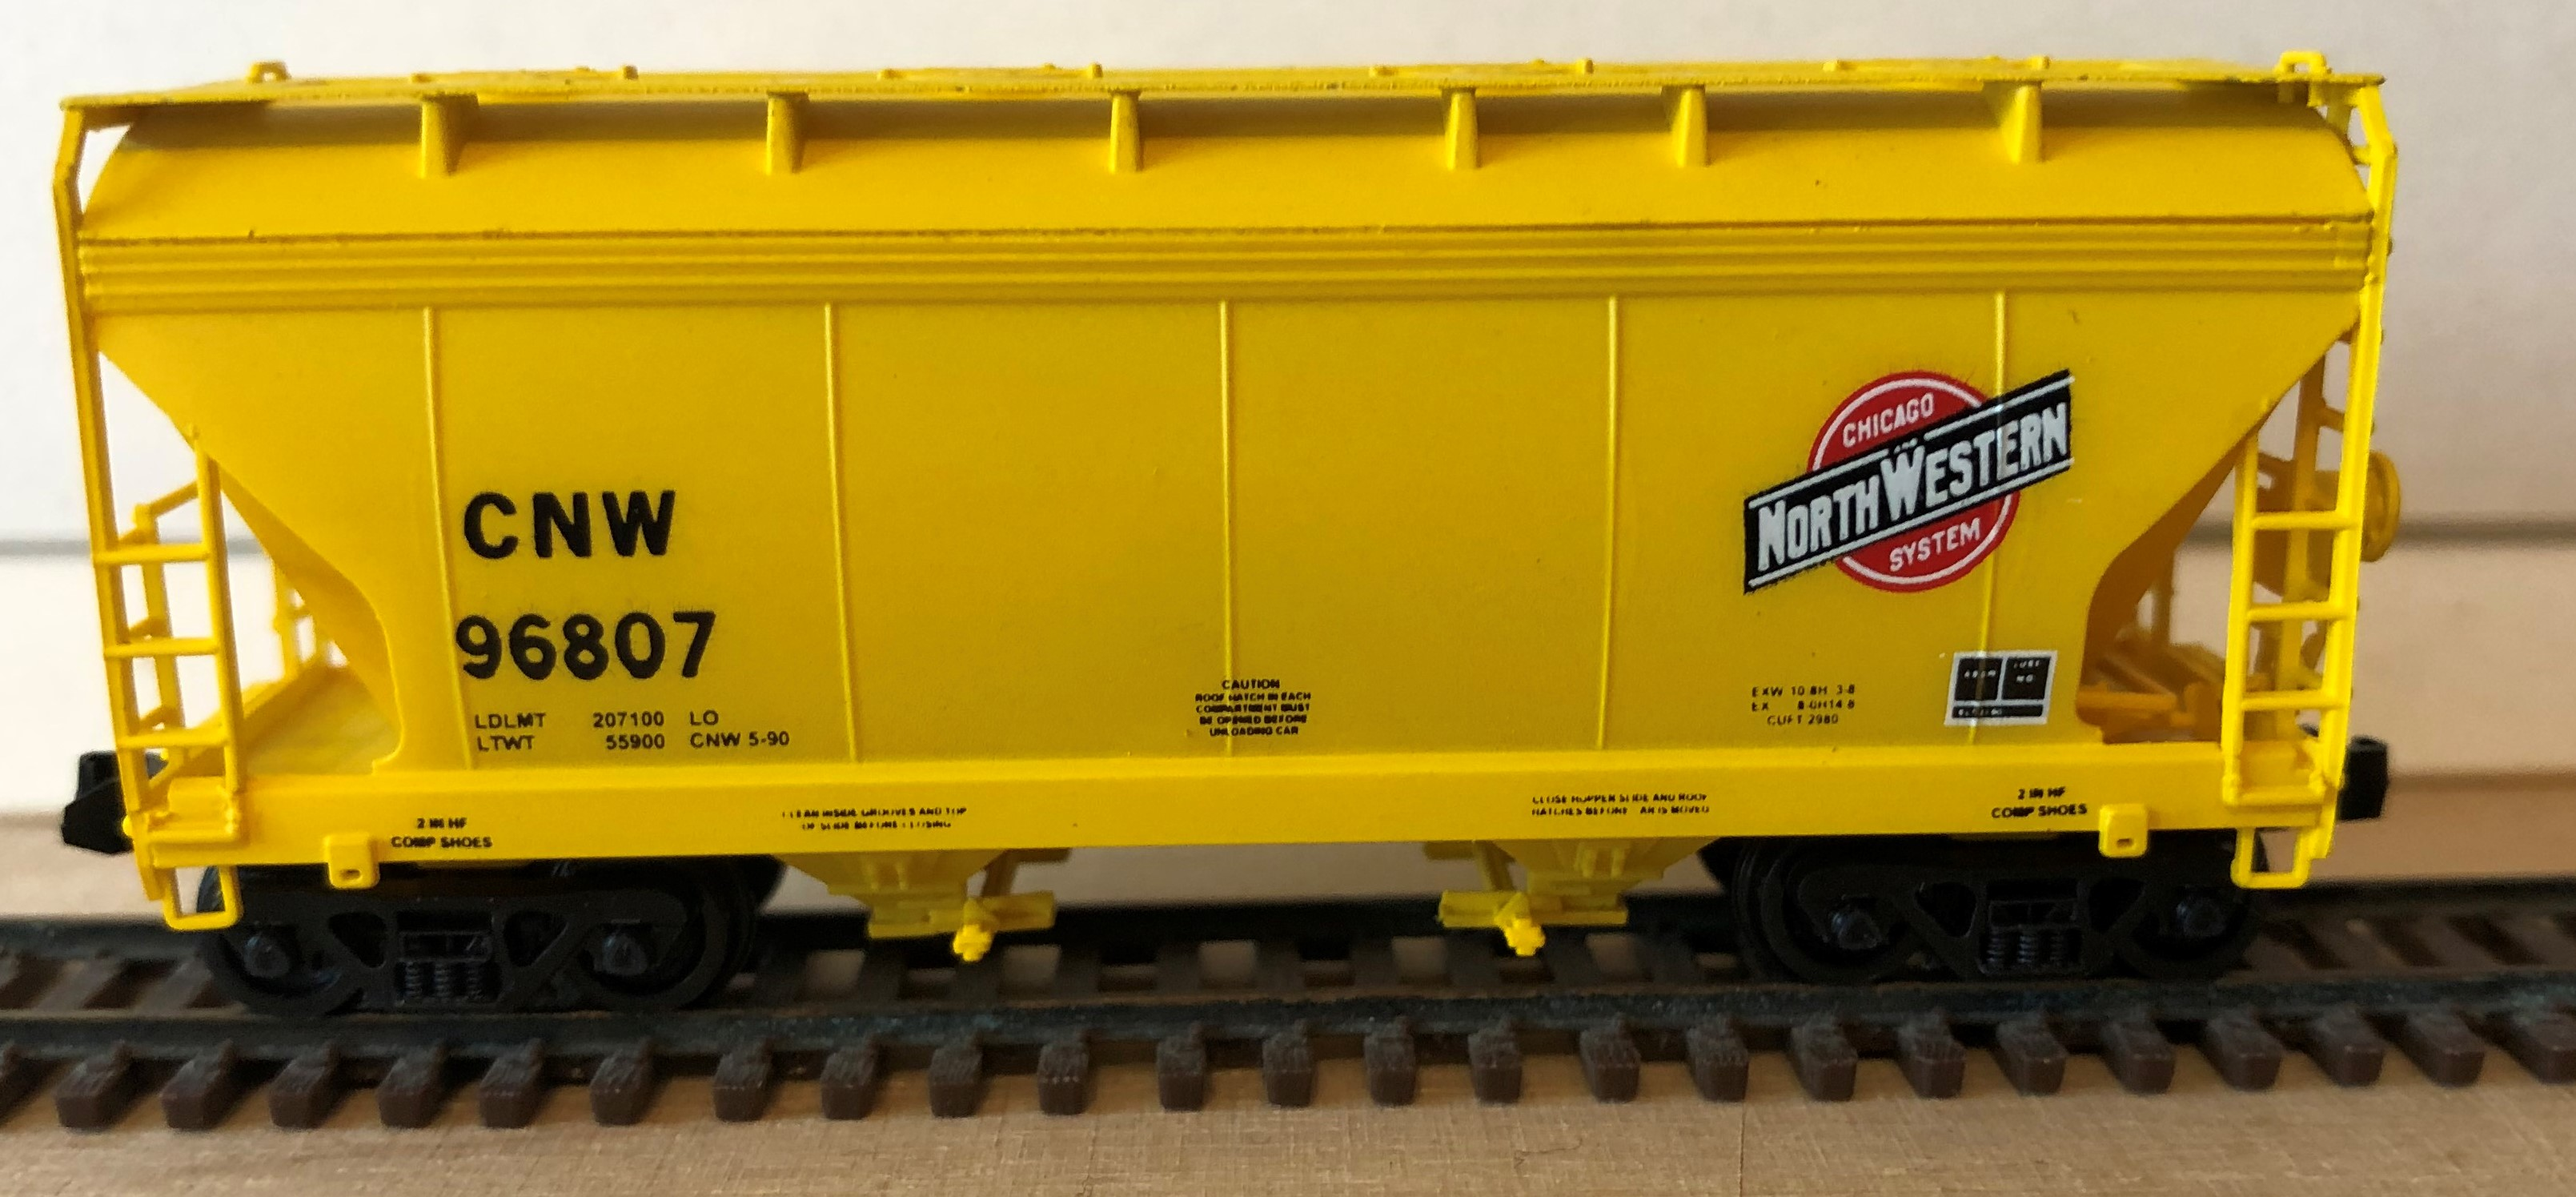 N Scale - Pacific Western Rail Systems - 1057A - Covered Hopper, 2-Bay, ACF Centerflow - Chicago & North Western - 96807